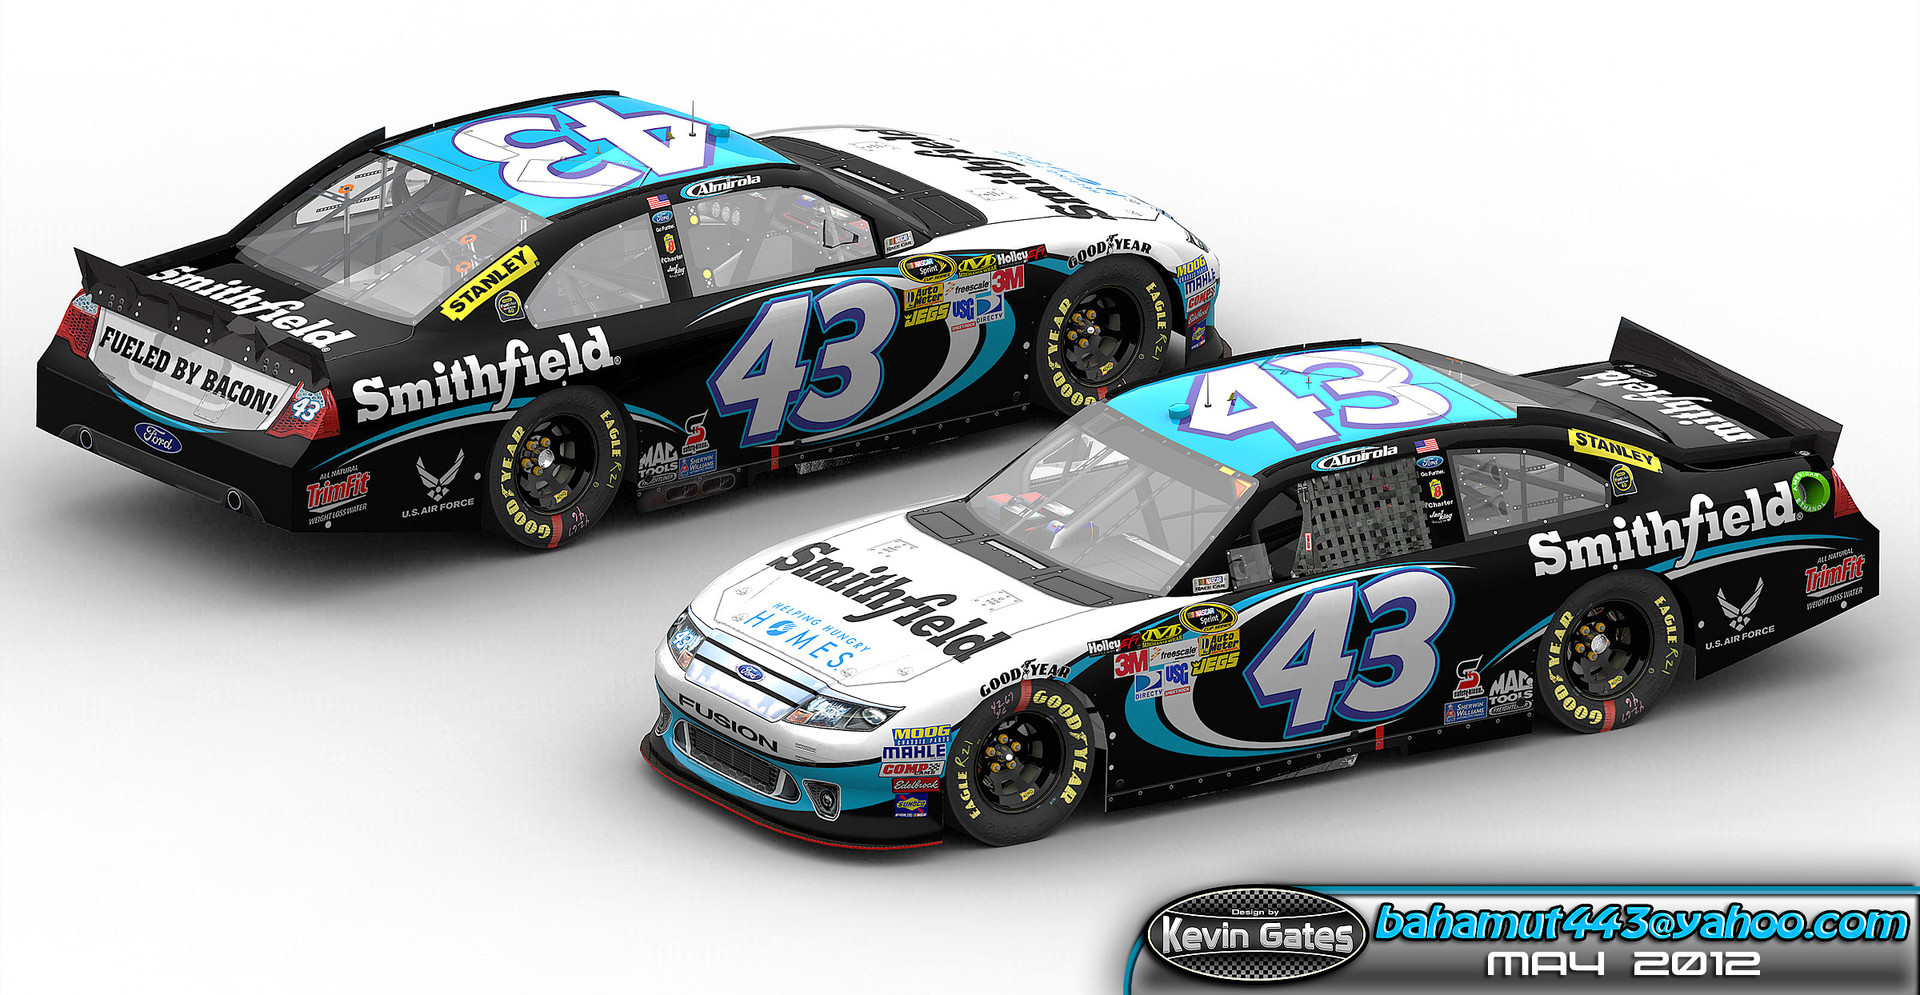 Original Autodesk 3DS Max render of the finalized 2012 version of the #43 Smithfield Ford Fusion driven by NASCAR Sprint Cup Series driver Aric Almirola of Richard Petty Motorsports